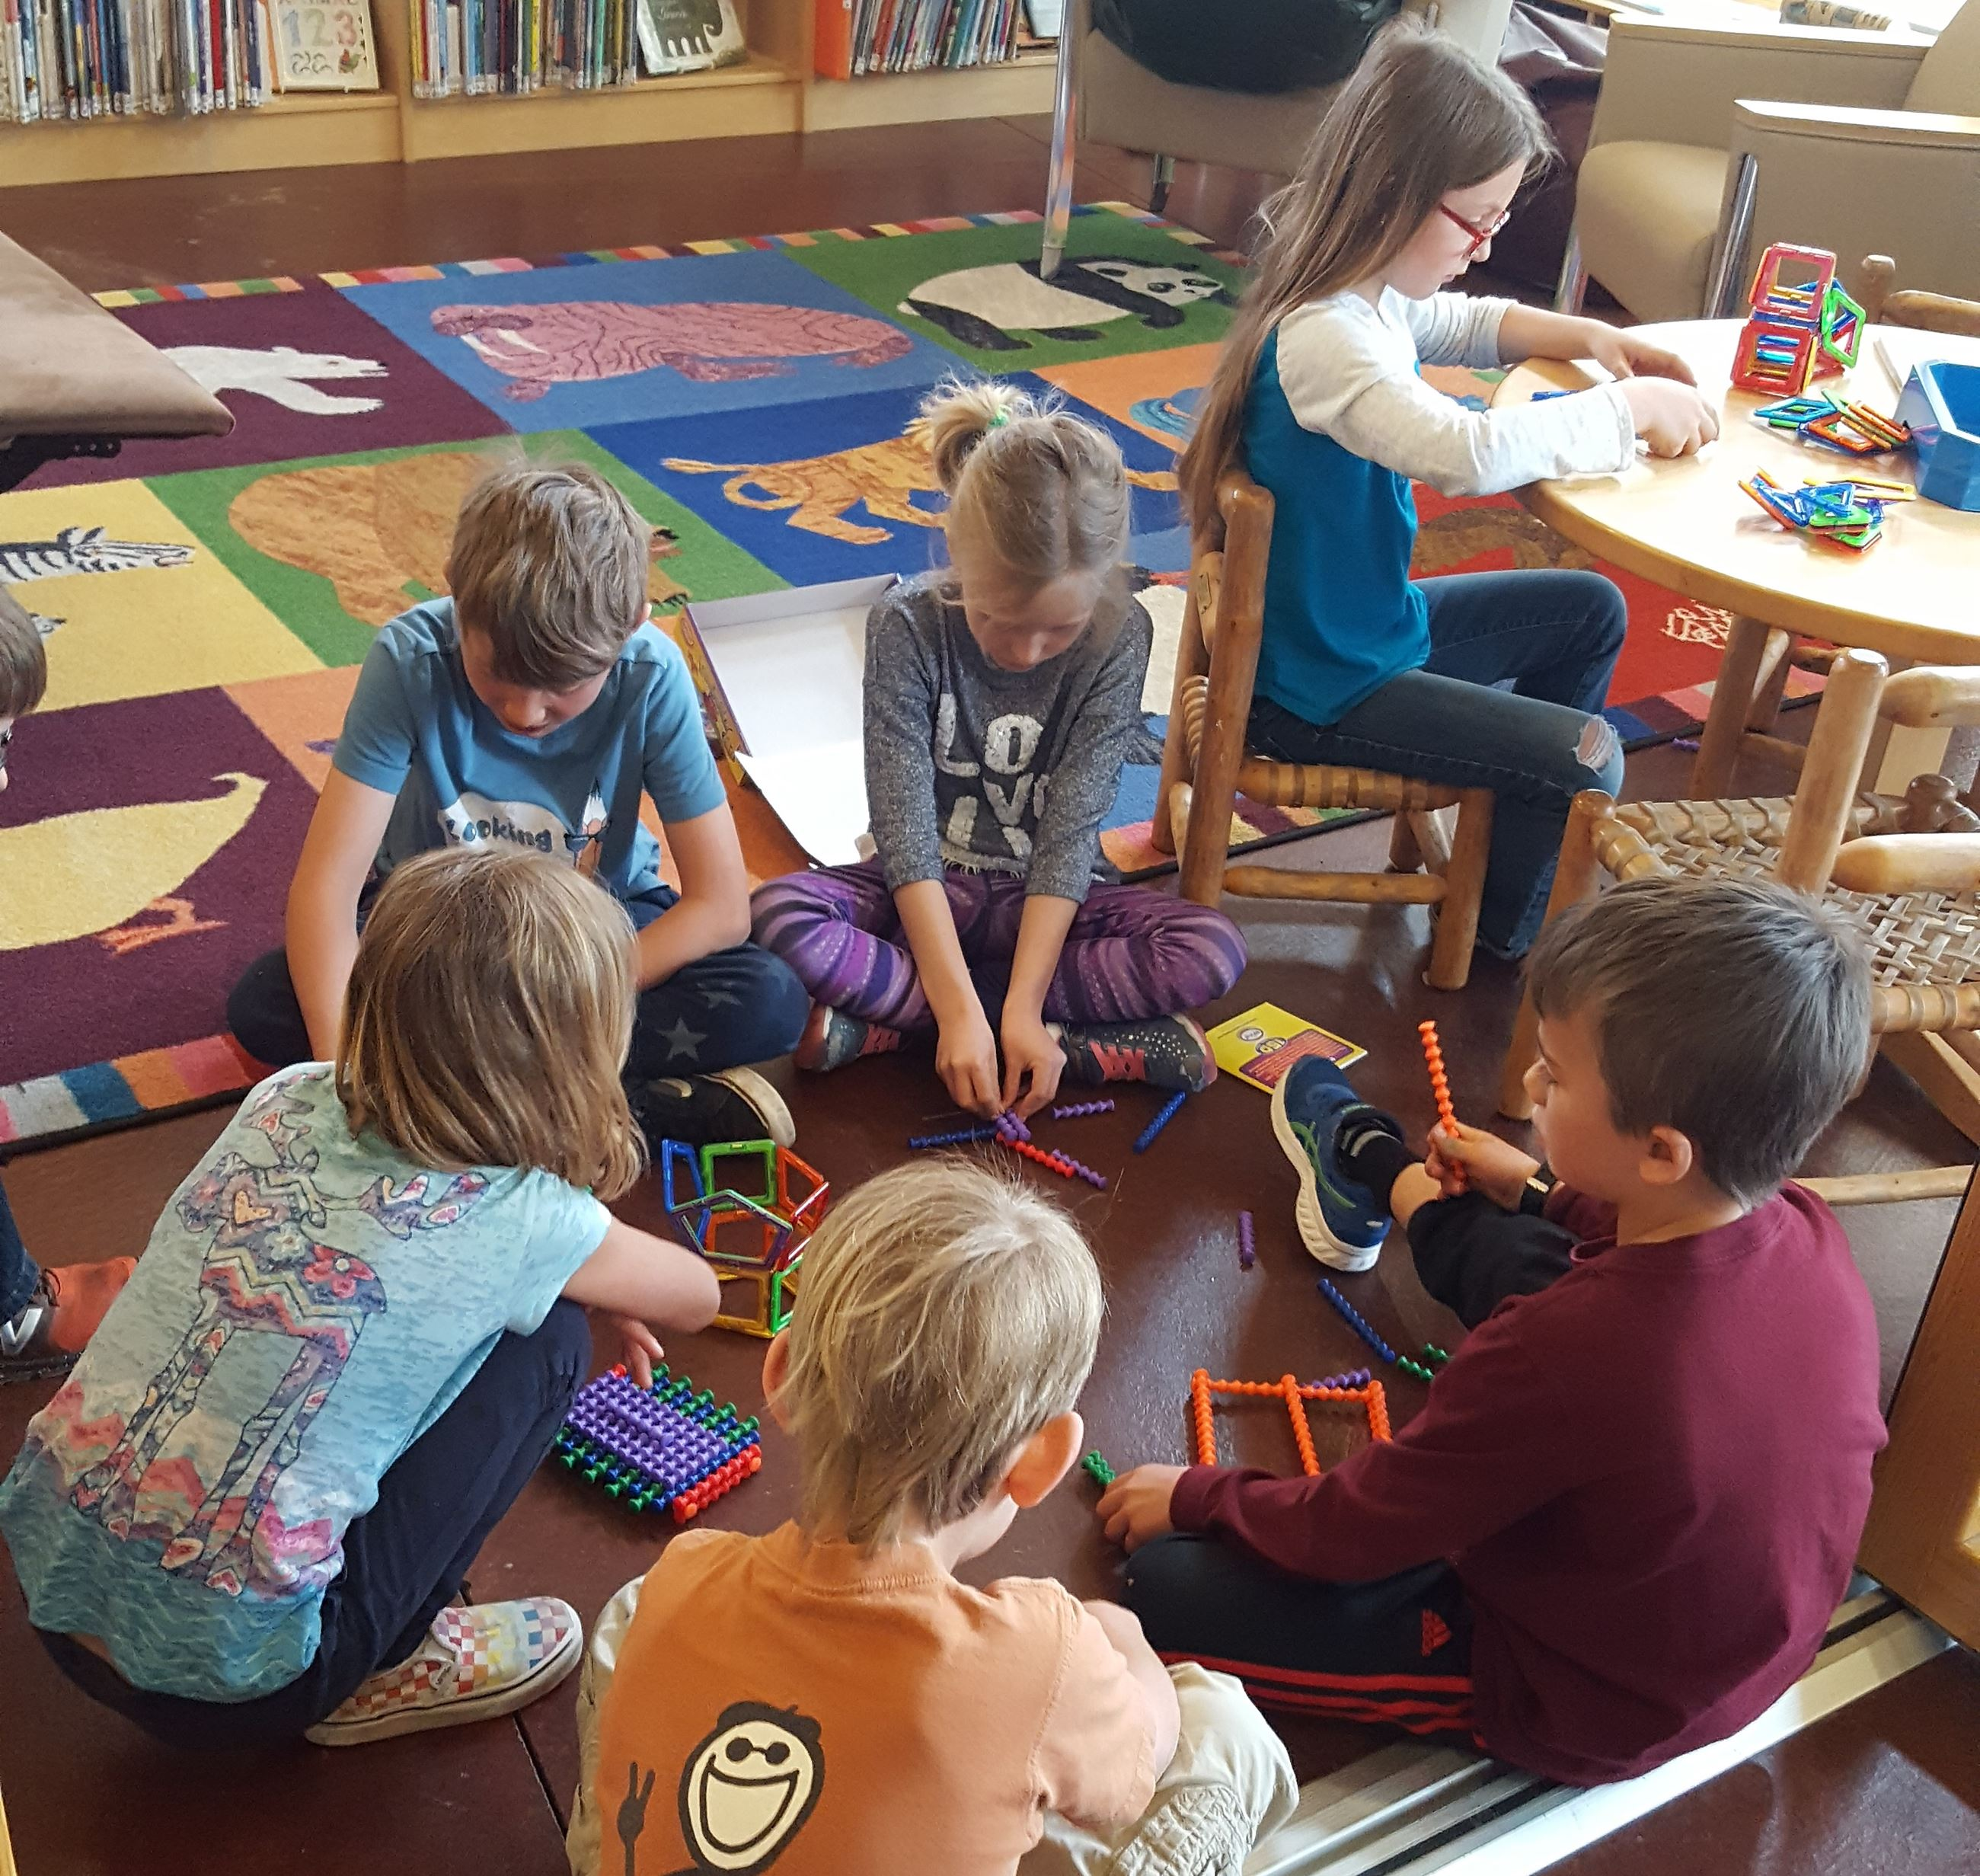 image of kids playing at the Alta library